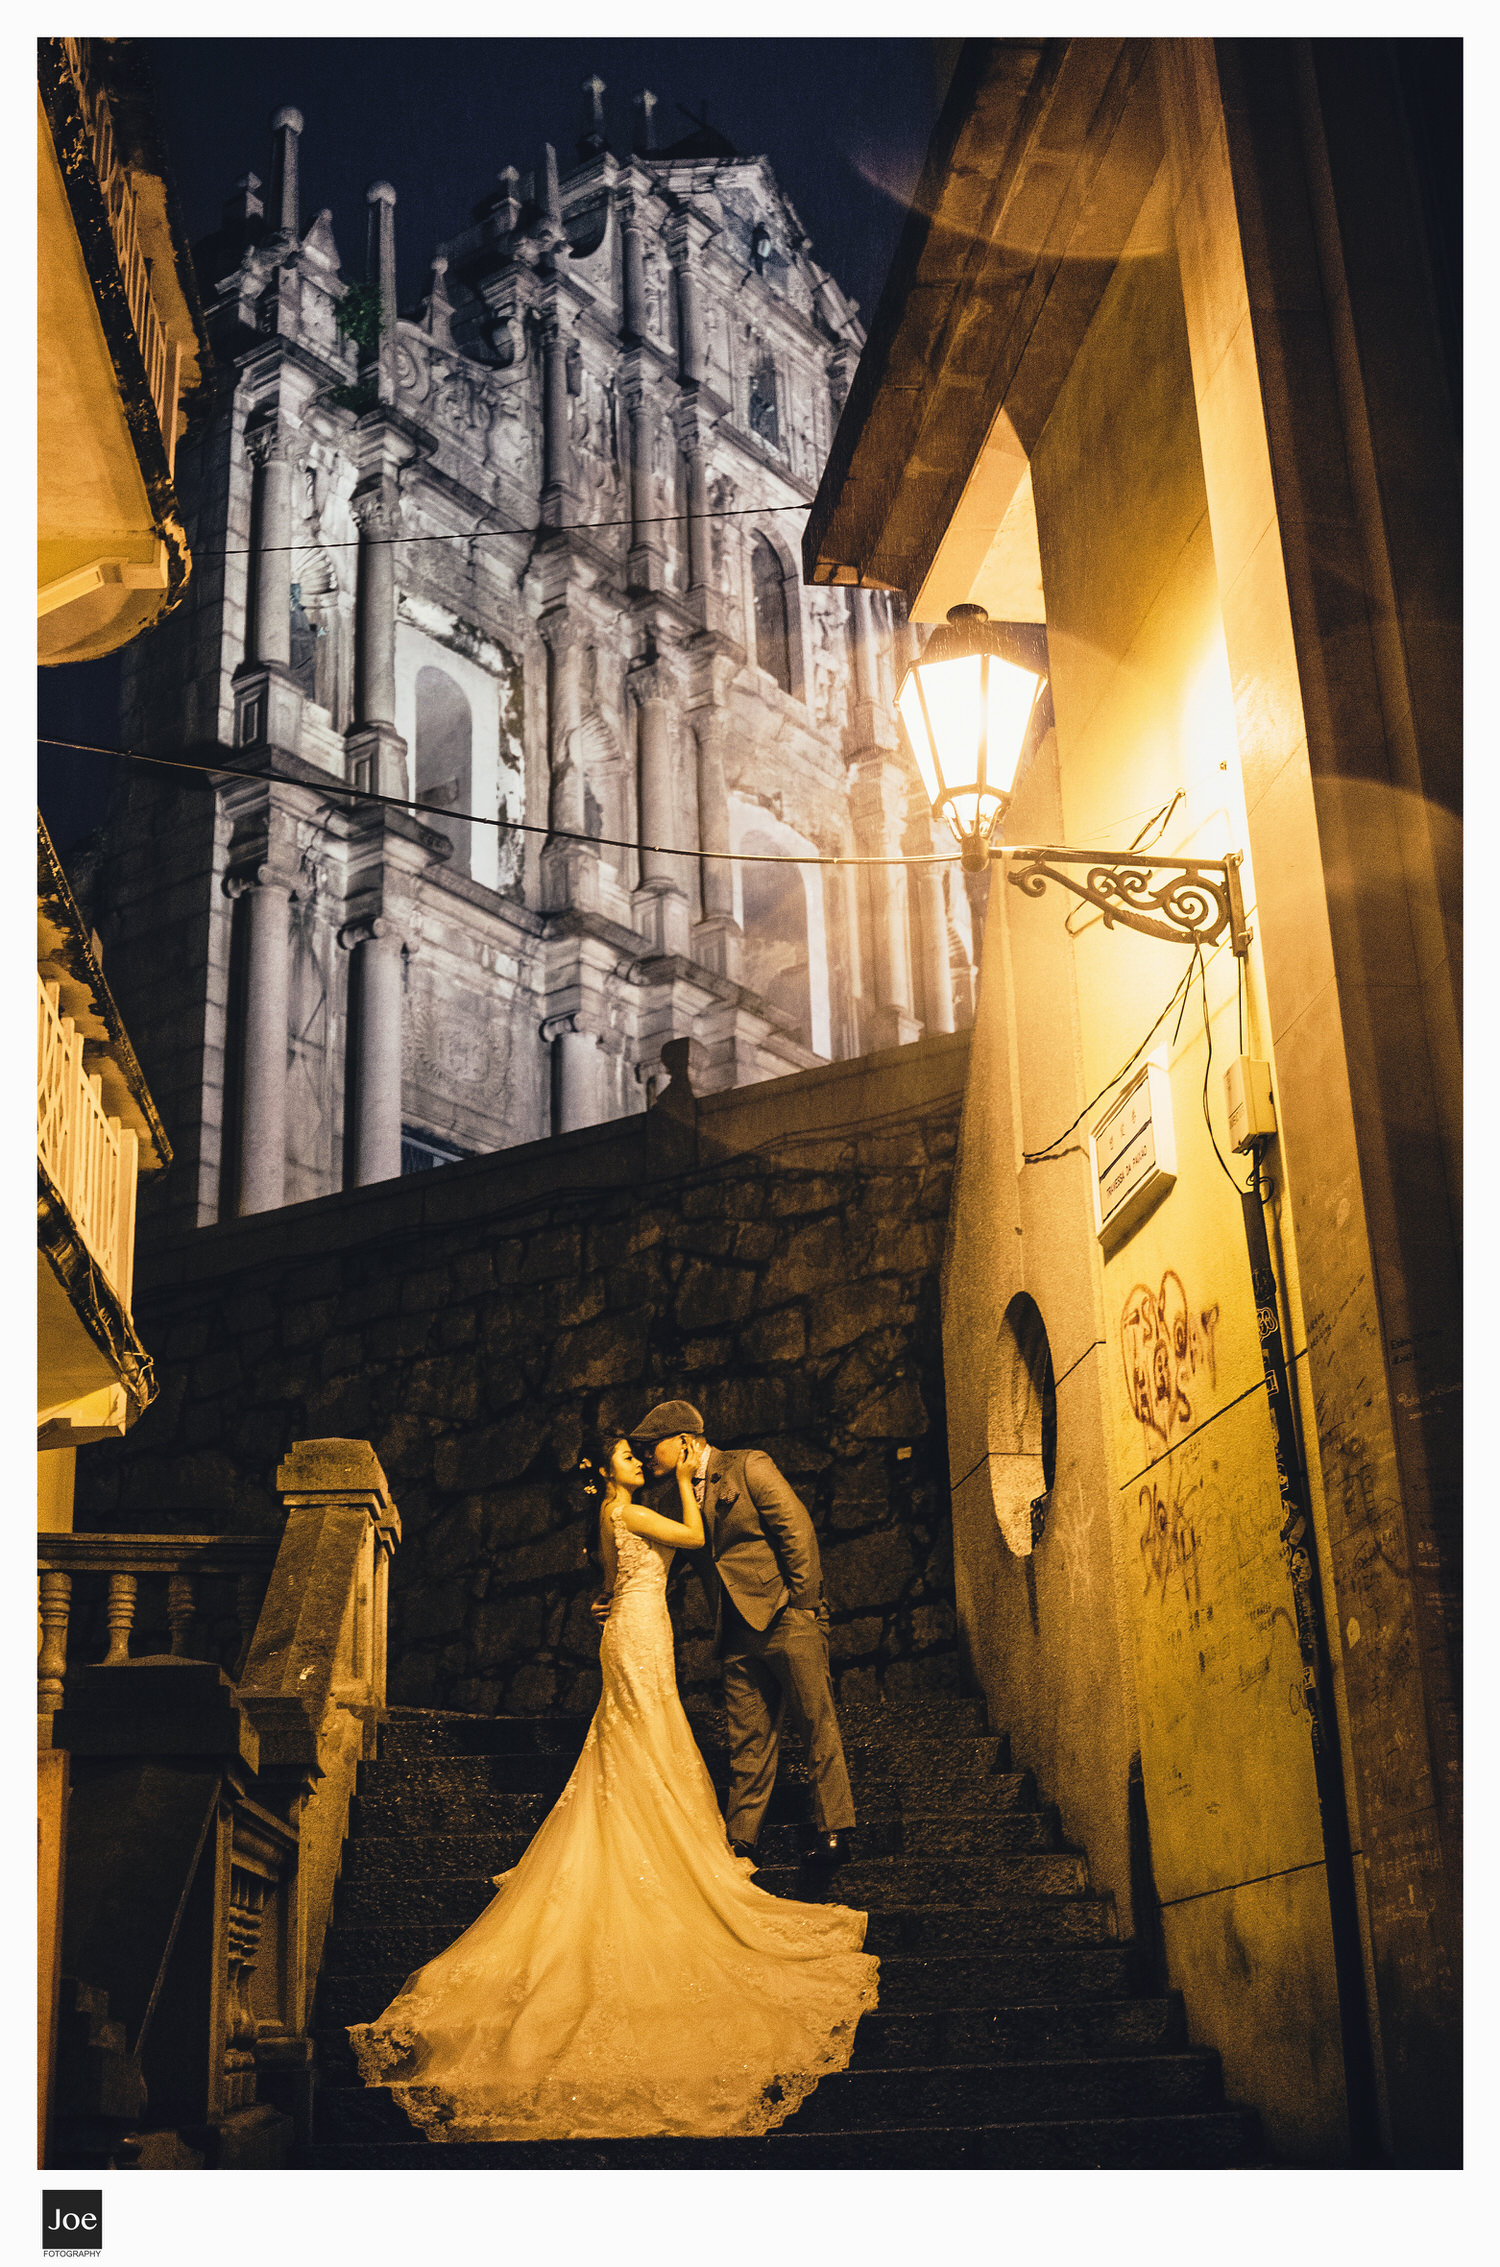 092-travessa-da-paixao-macau-pre-wedding-jie-min-joe-fotography.jpg